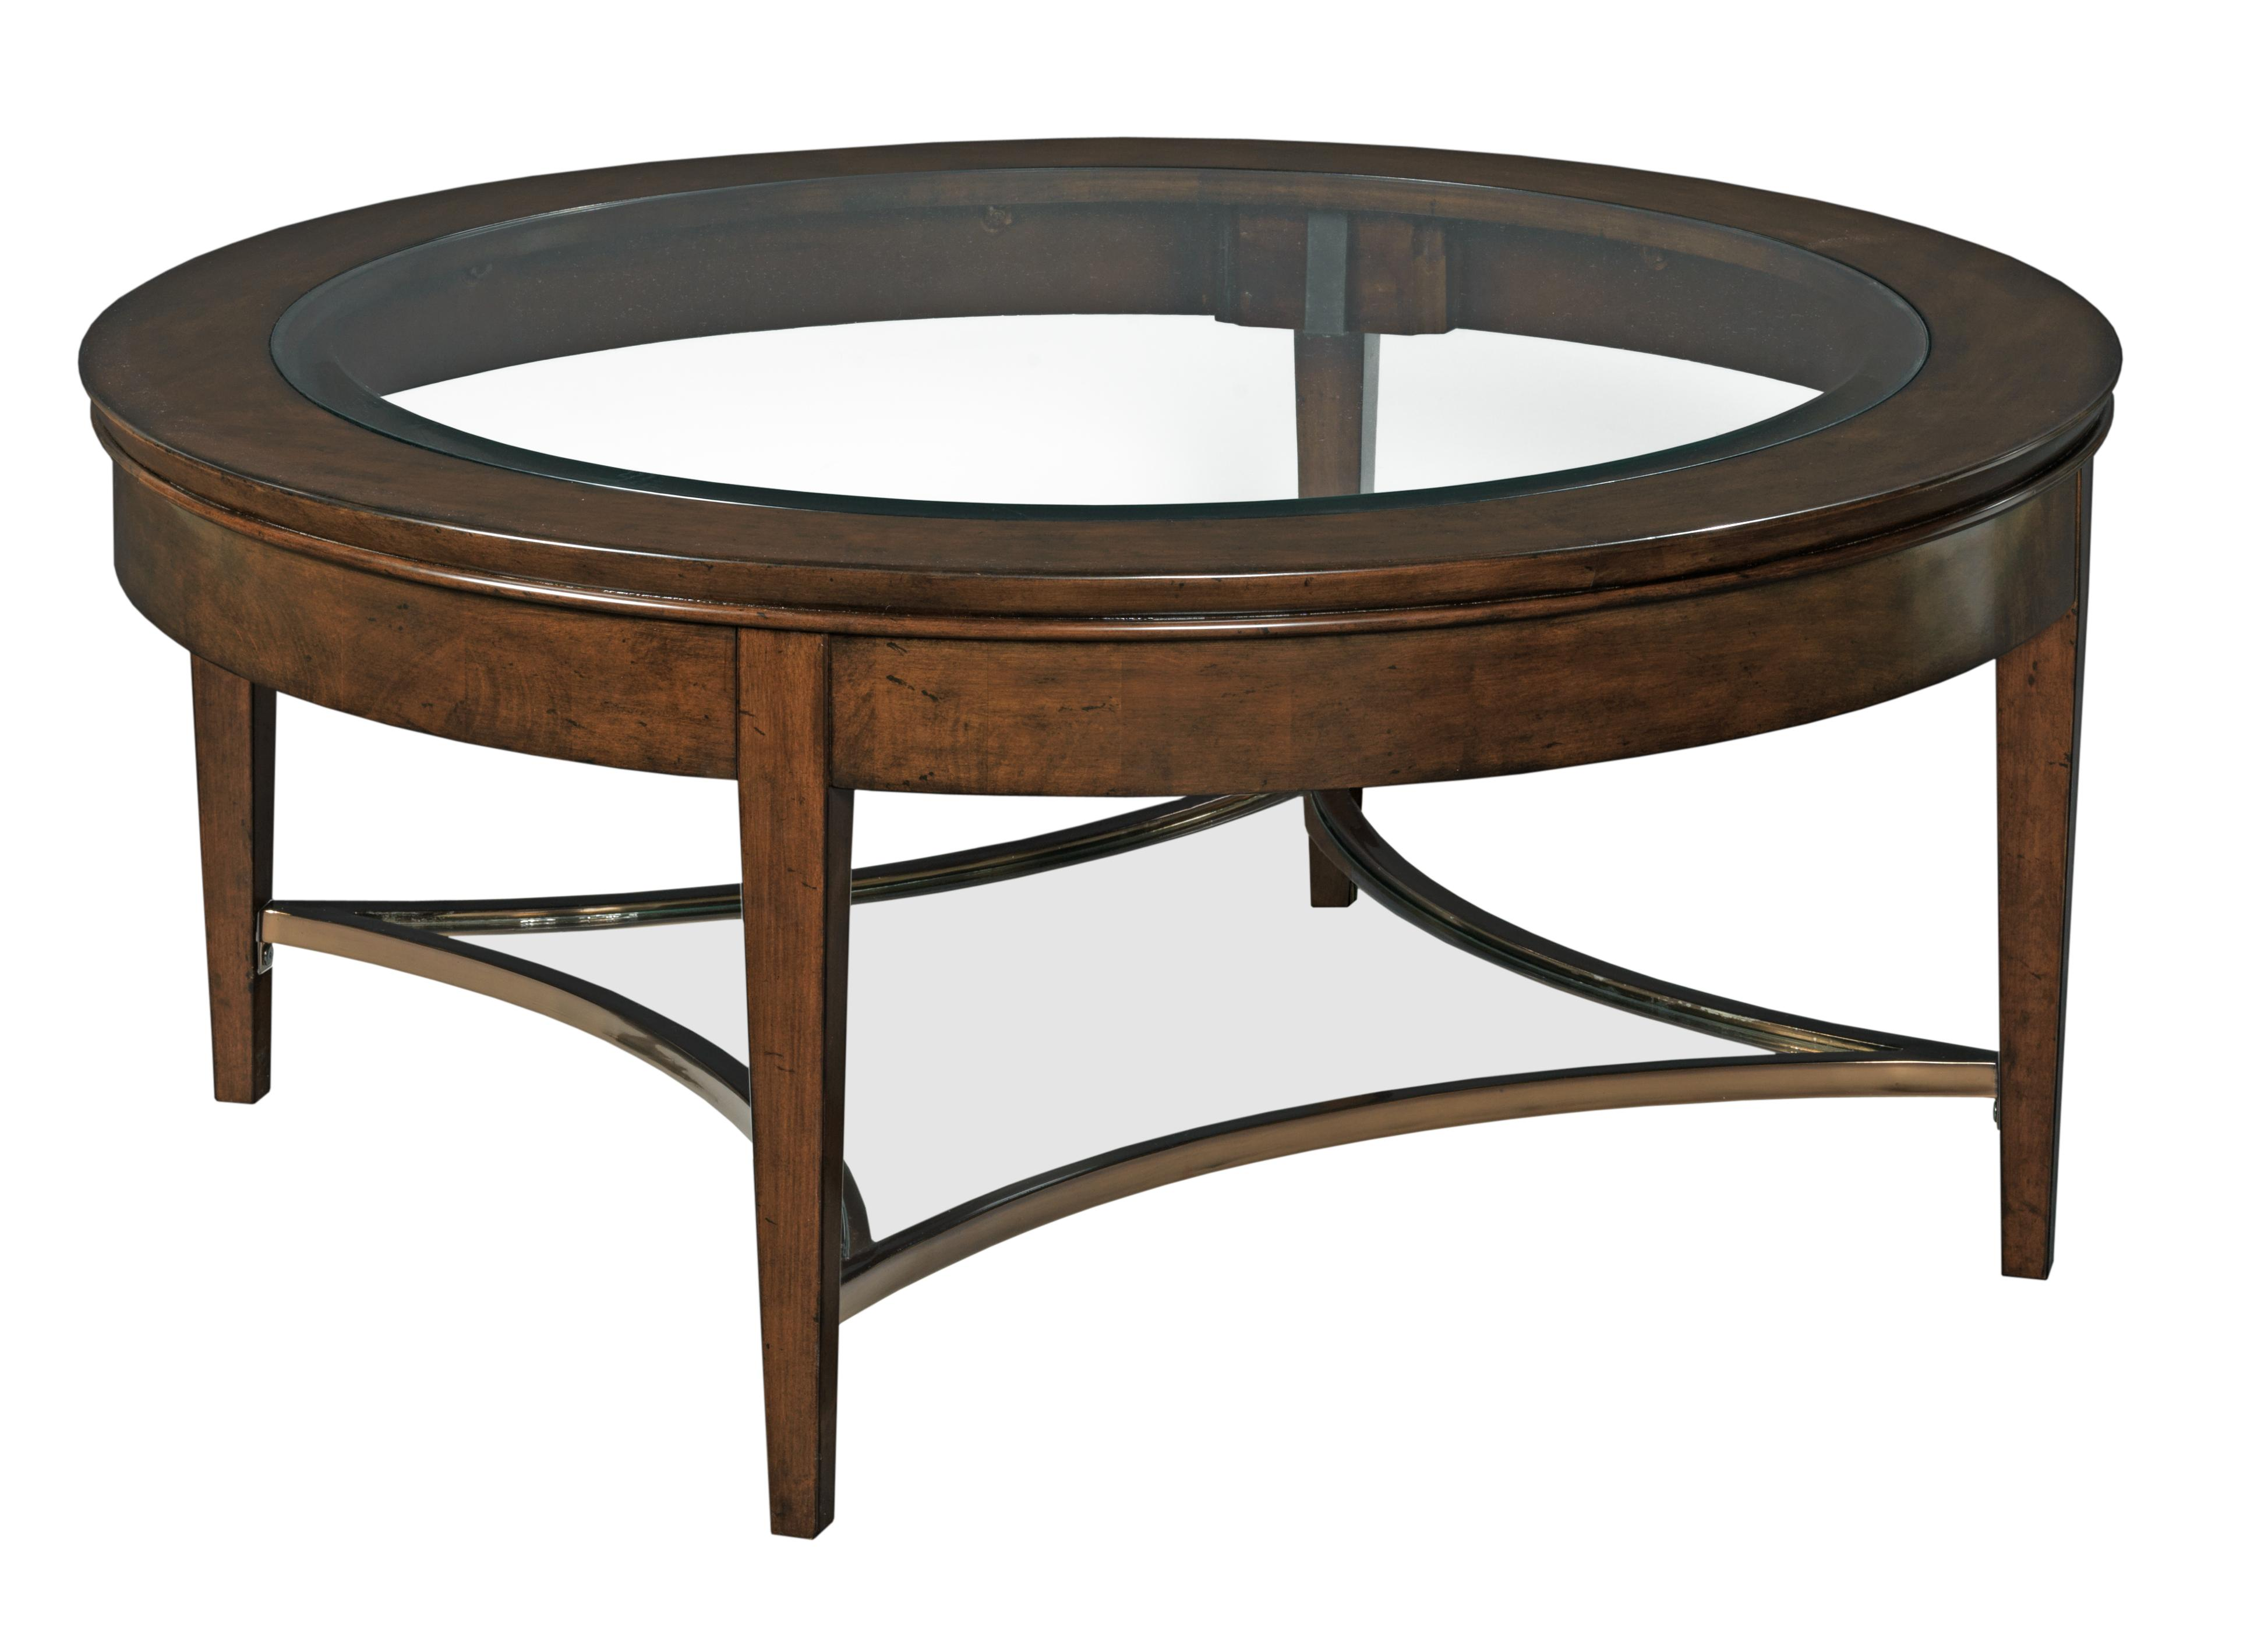 Kincaid Furniture Elise Aura Cocktail Table - Item Number: 77-024